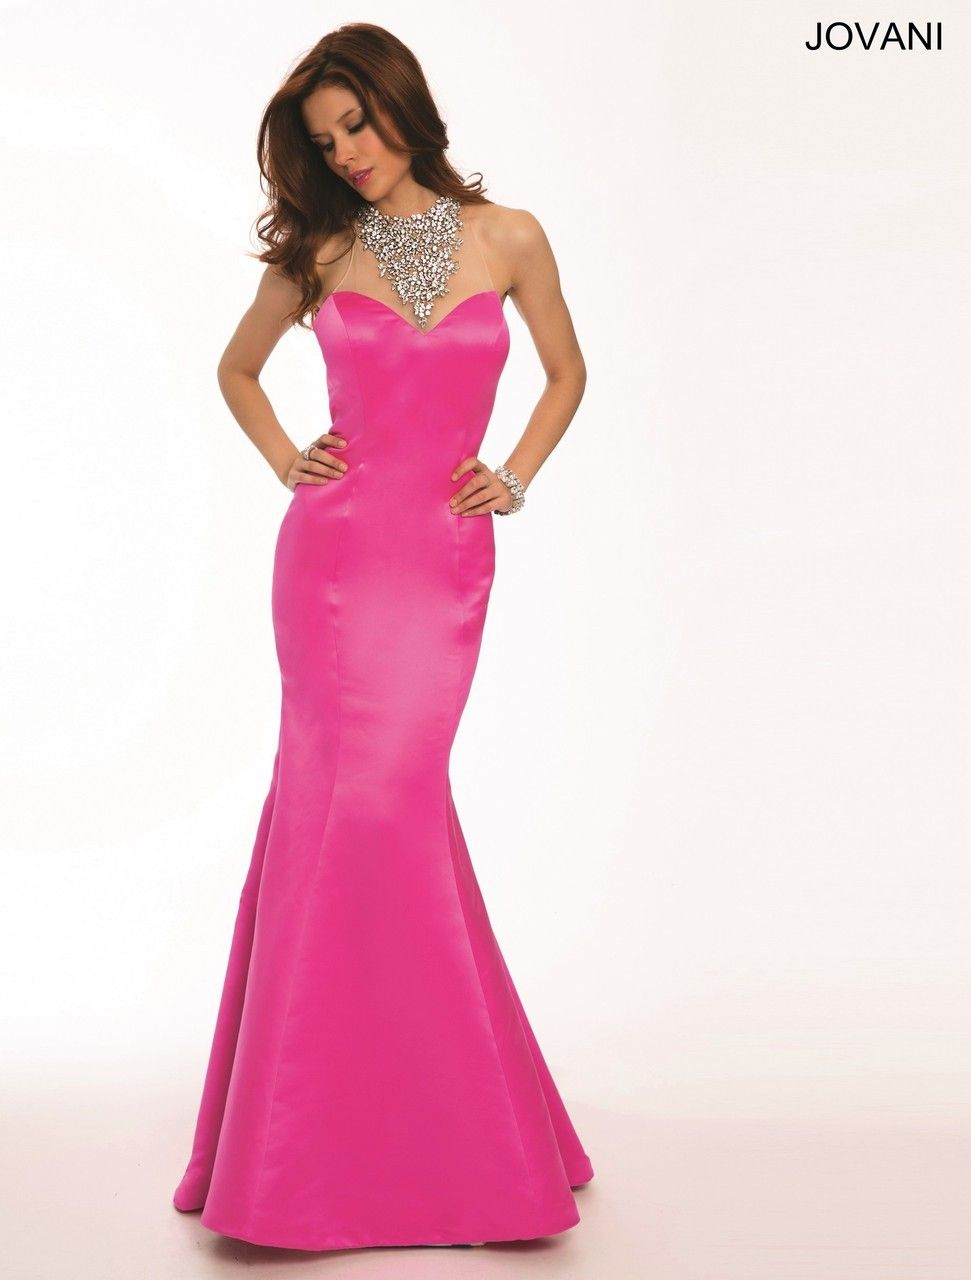 Jovani 20999 Available Now At Effies Boutique Httpeffies